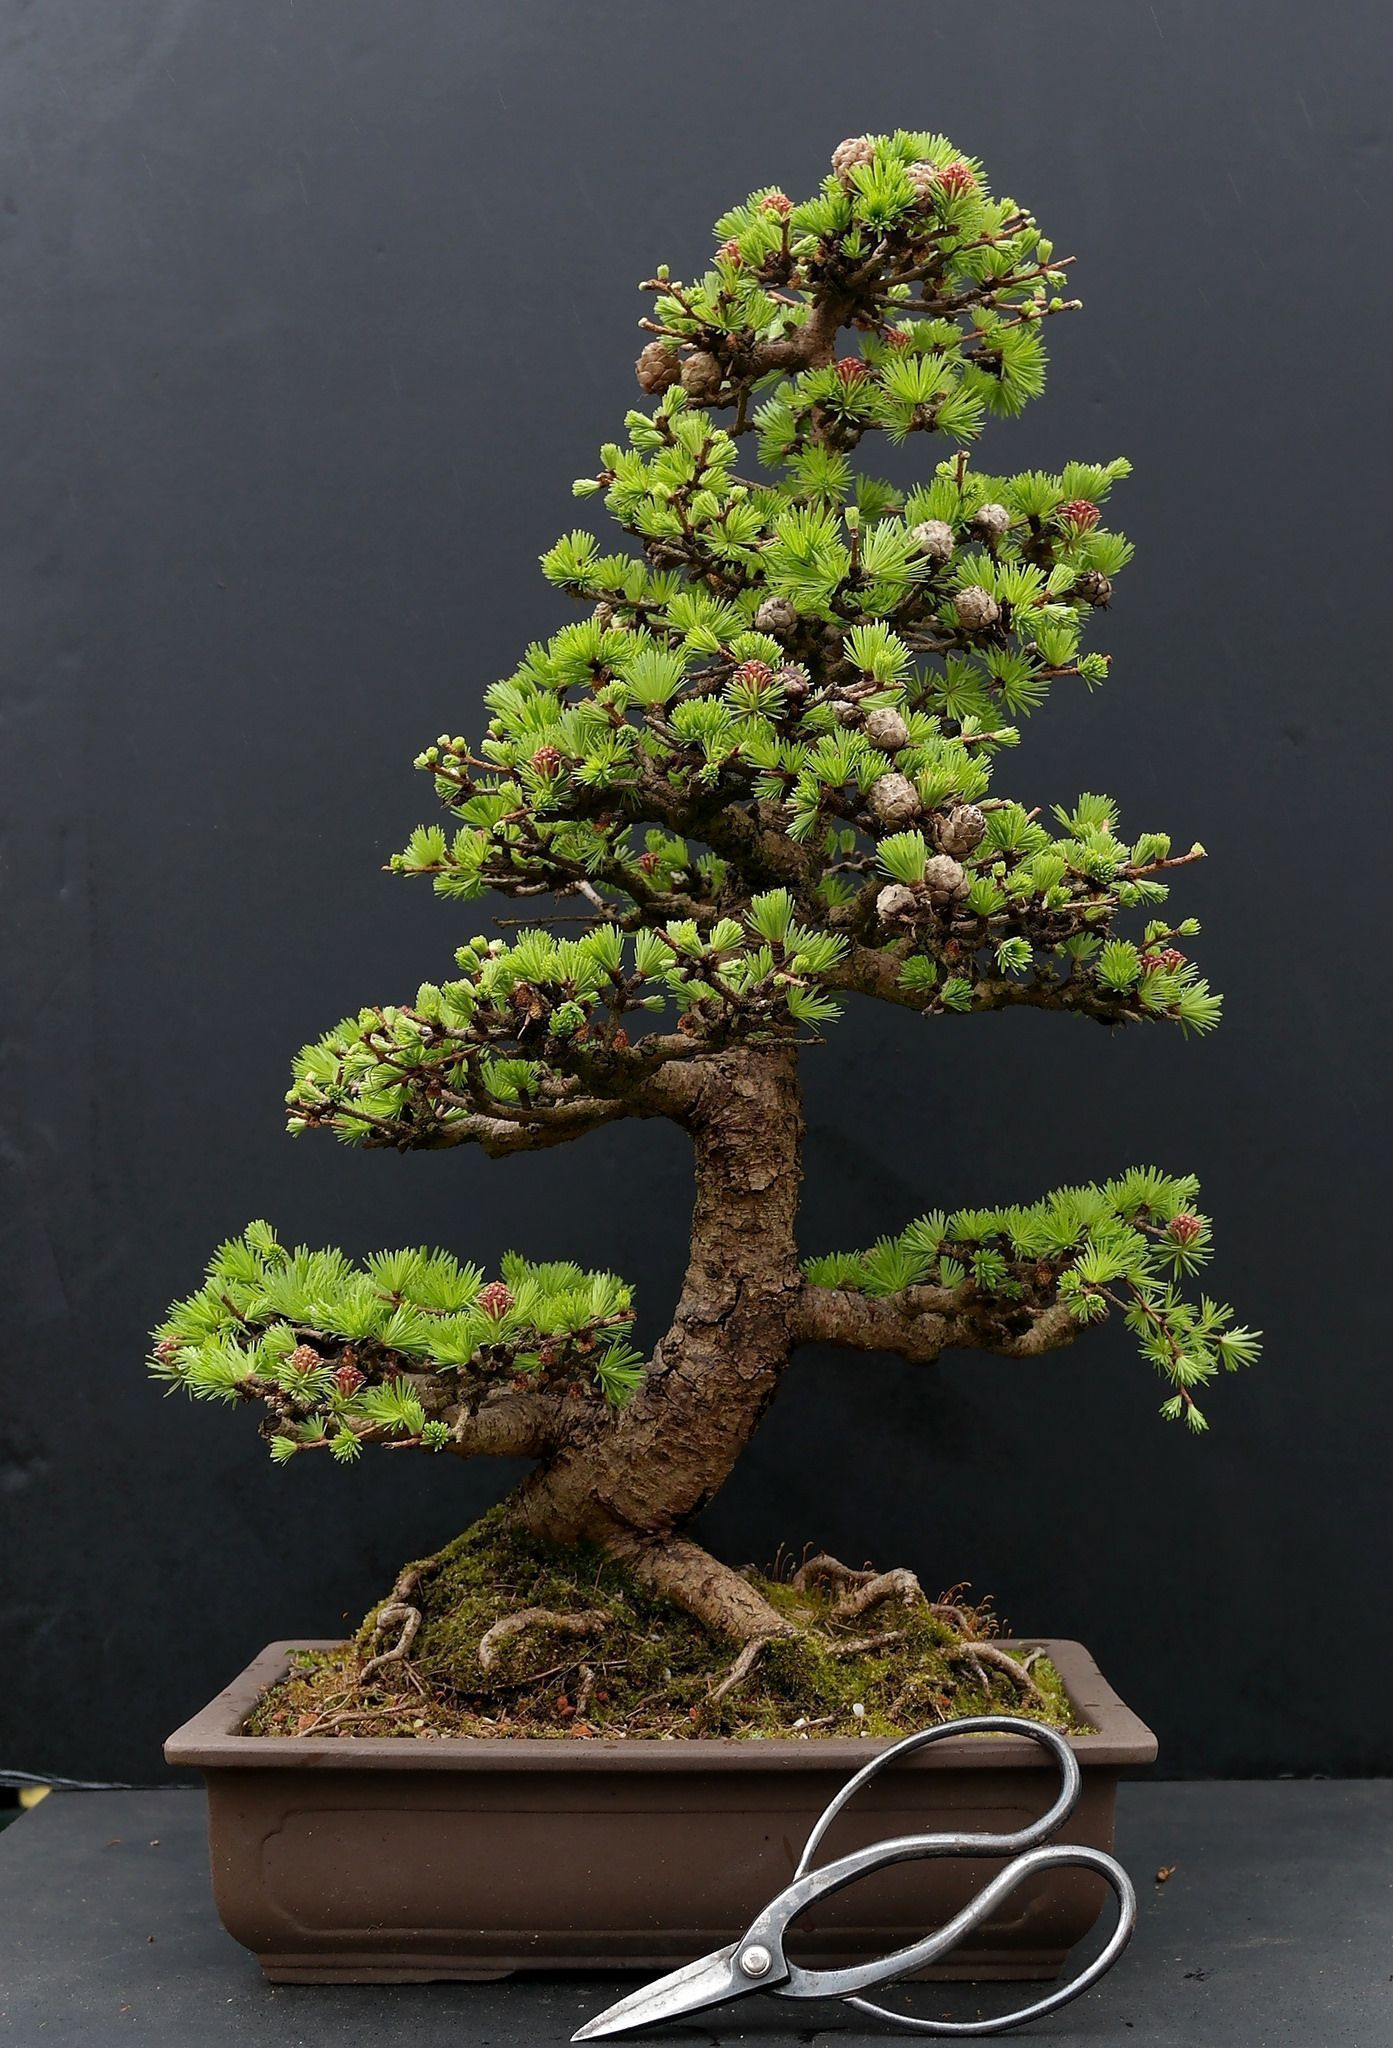 Achat Arbre D'intérieur What Is The Best Indoor Bonsai Tree For Beginners